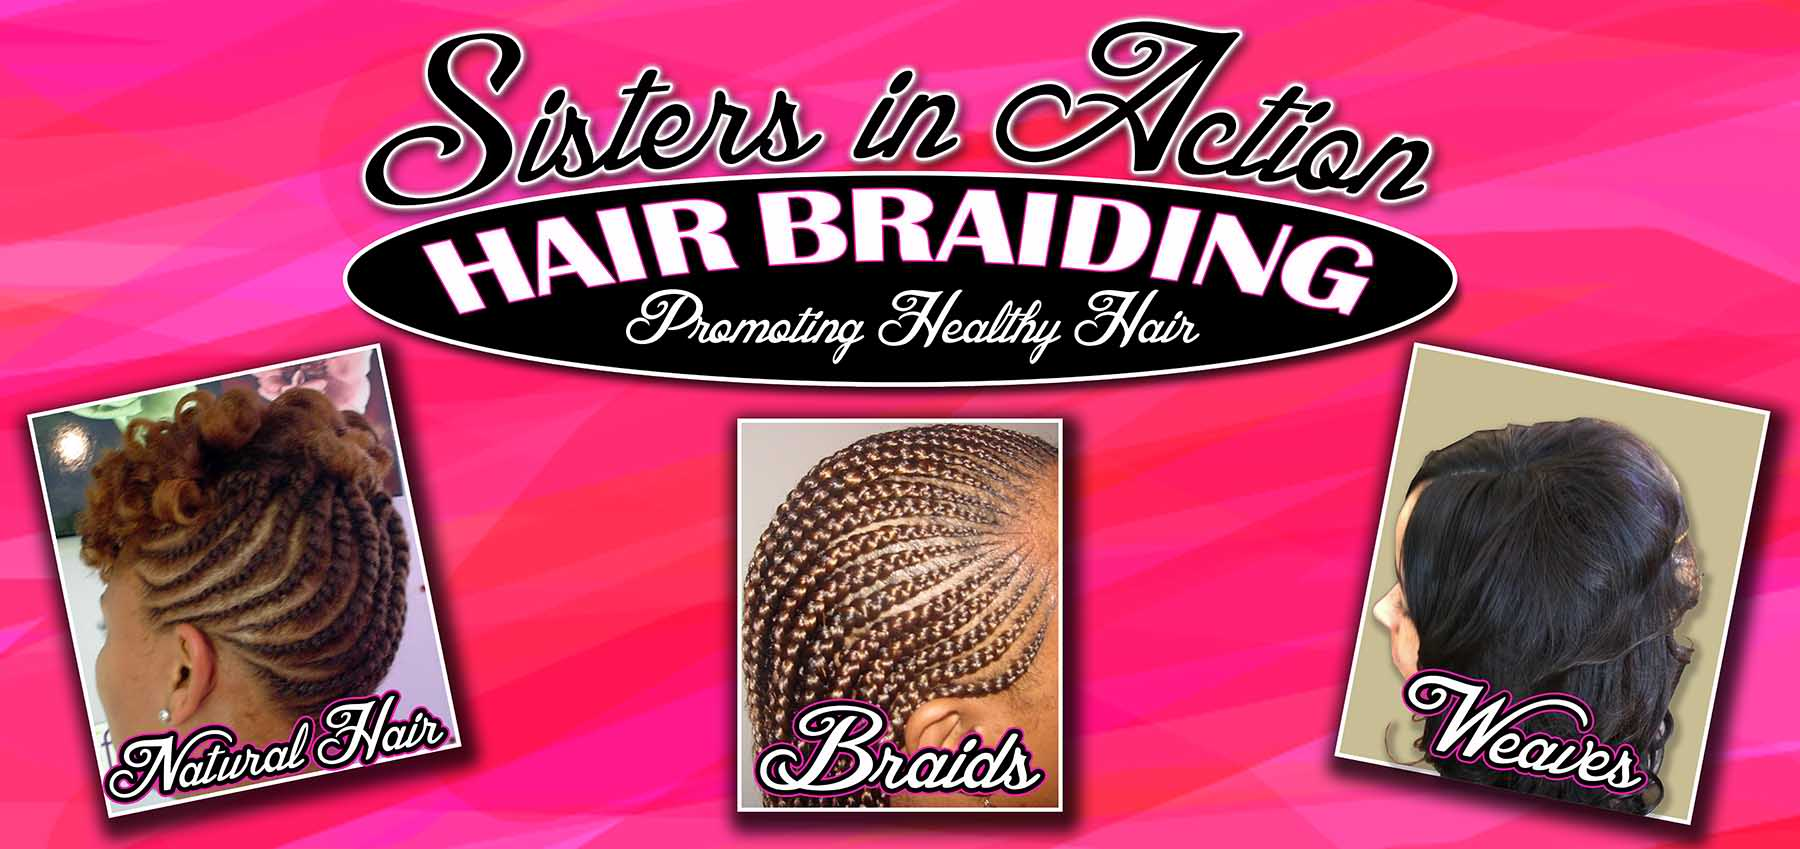 Sisters In Action Hair braiding Shop, 3920 Canton road, Marietta, Georgia, 30066, united states